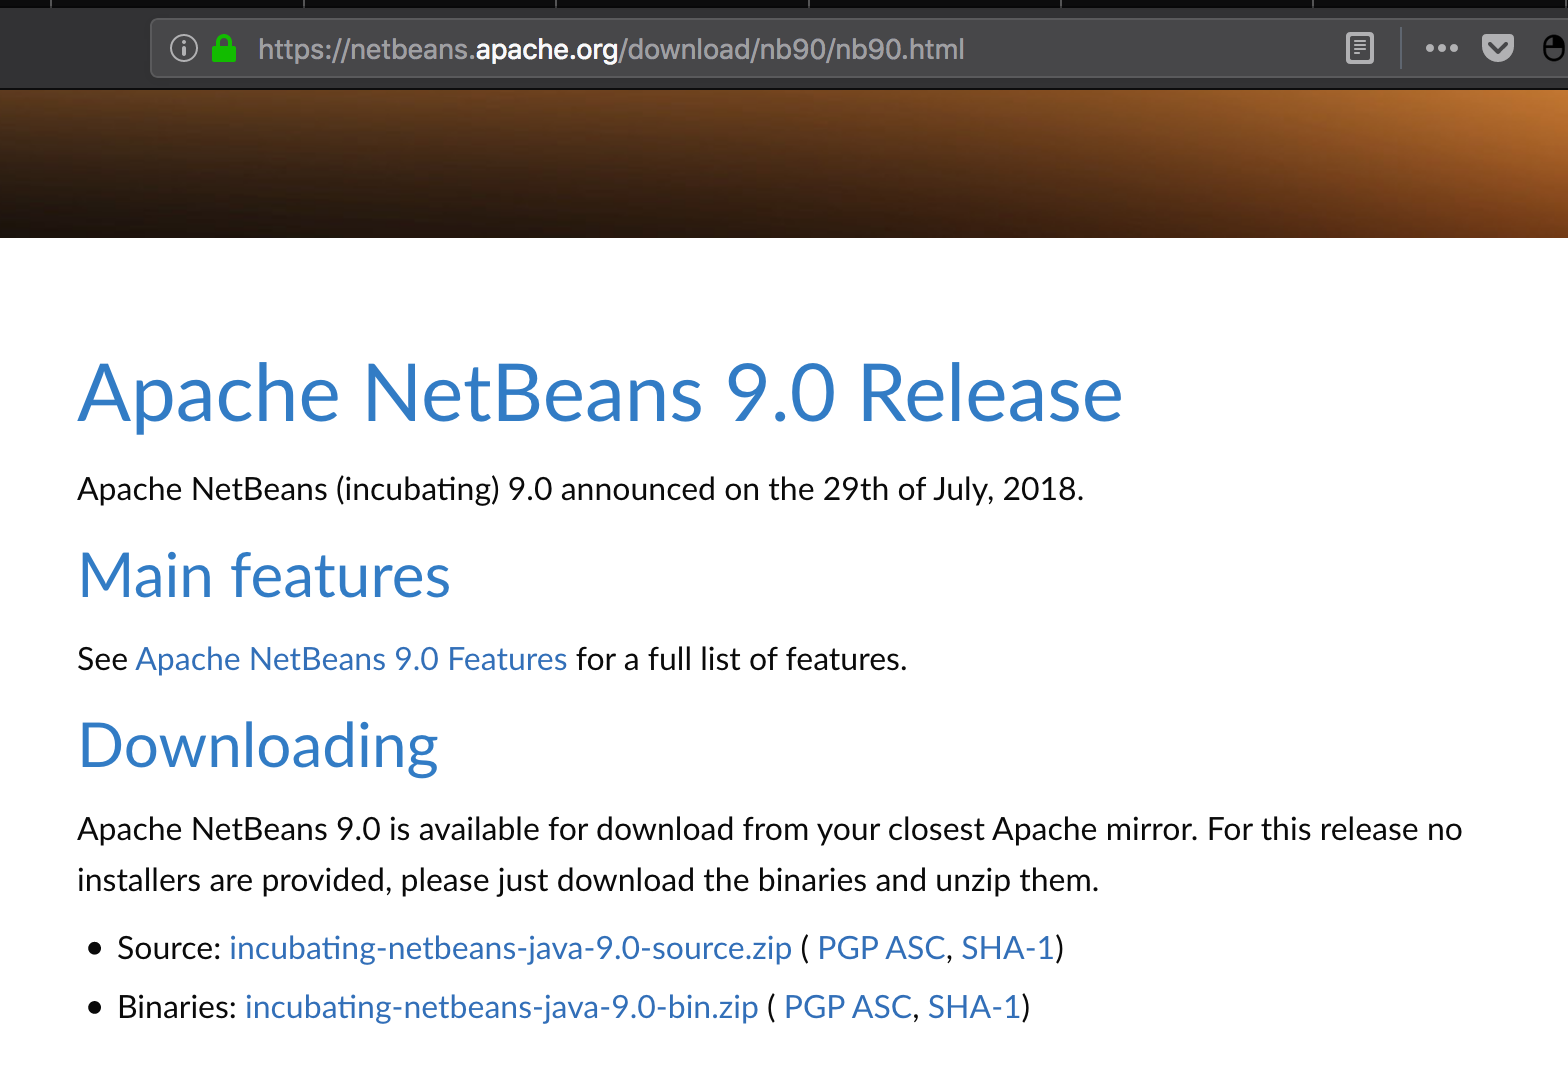 Notes on Java EE support for NetBeans 9